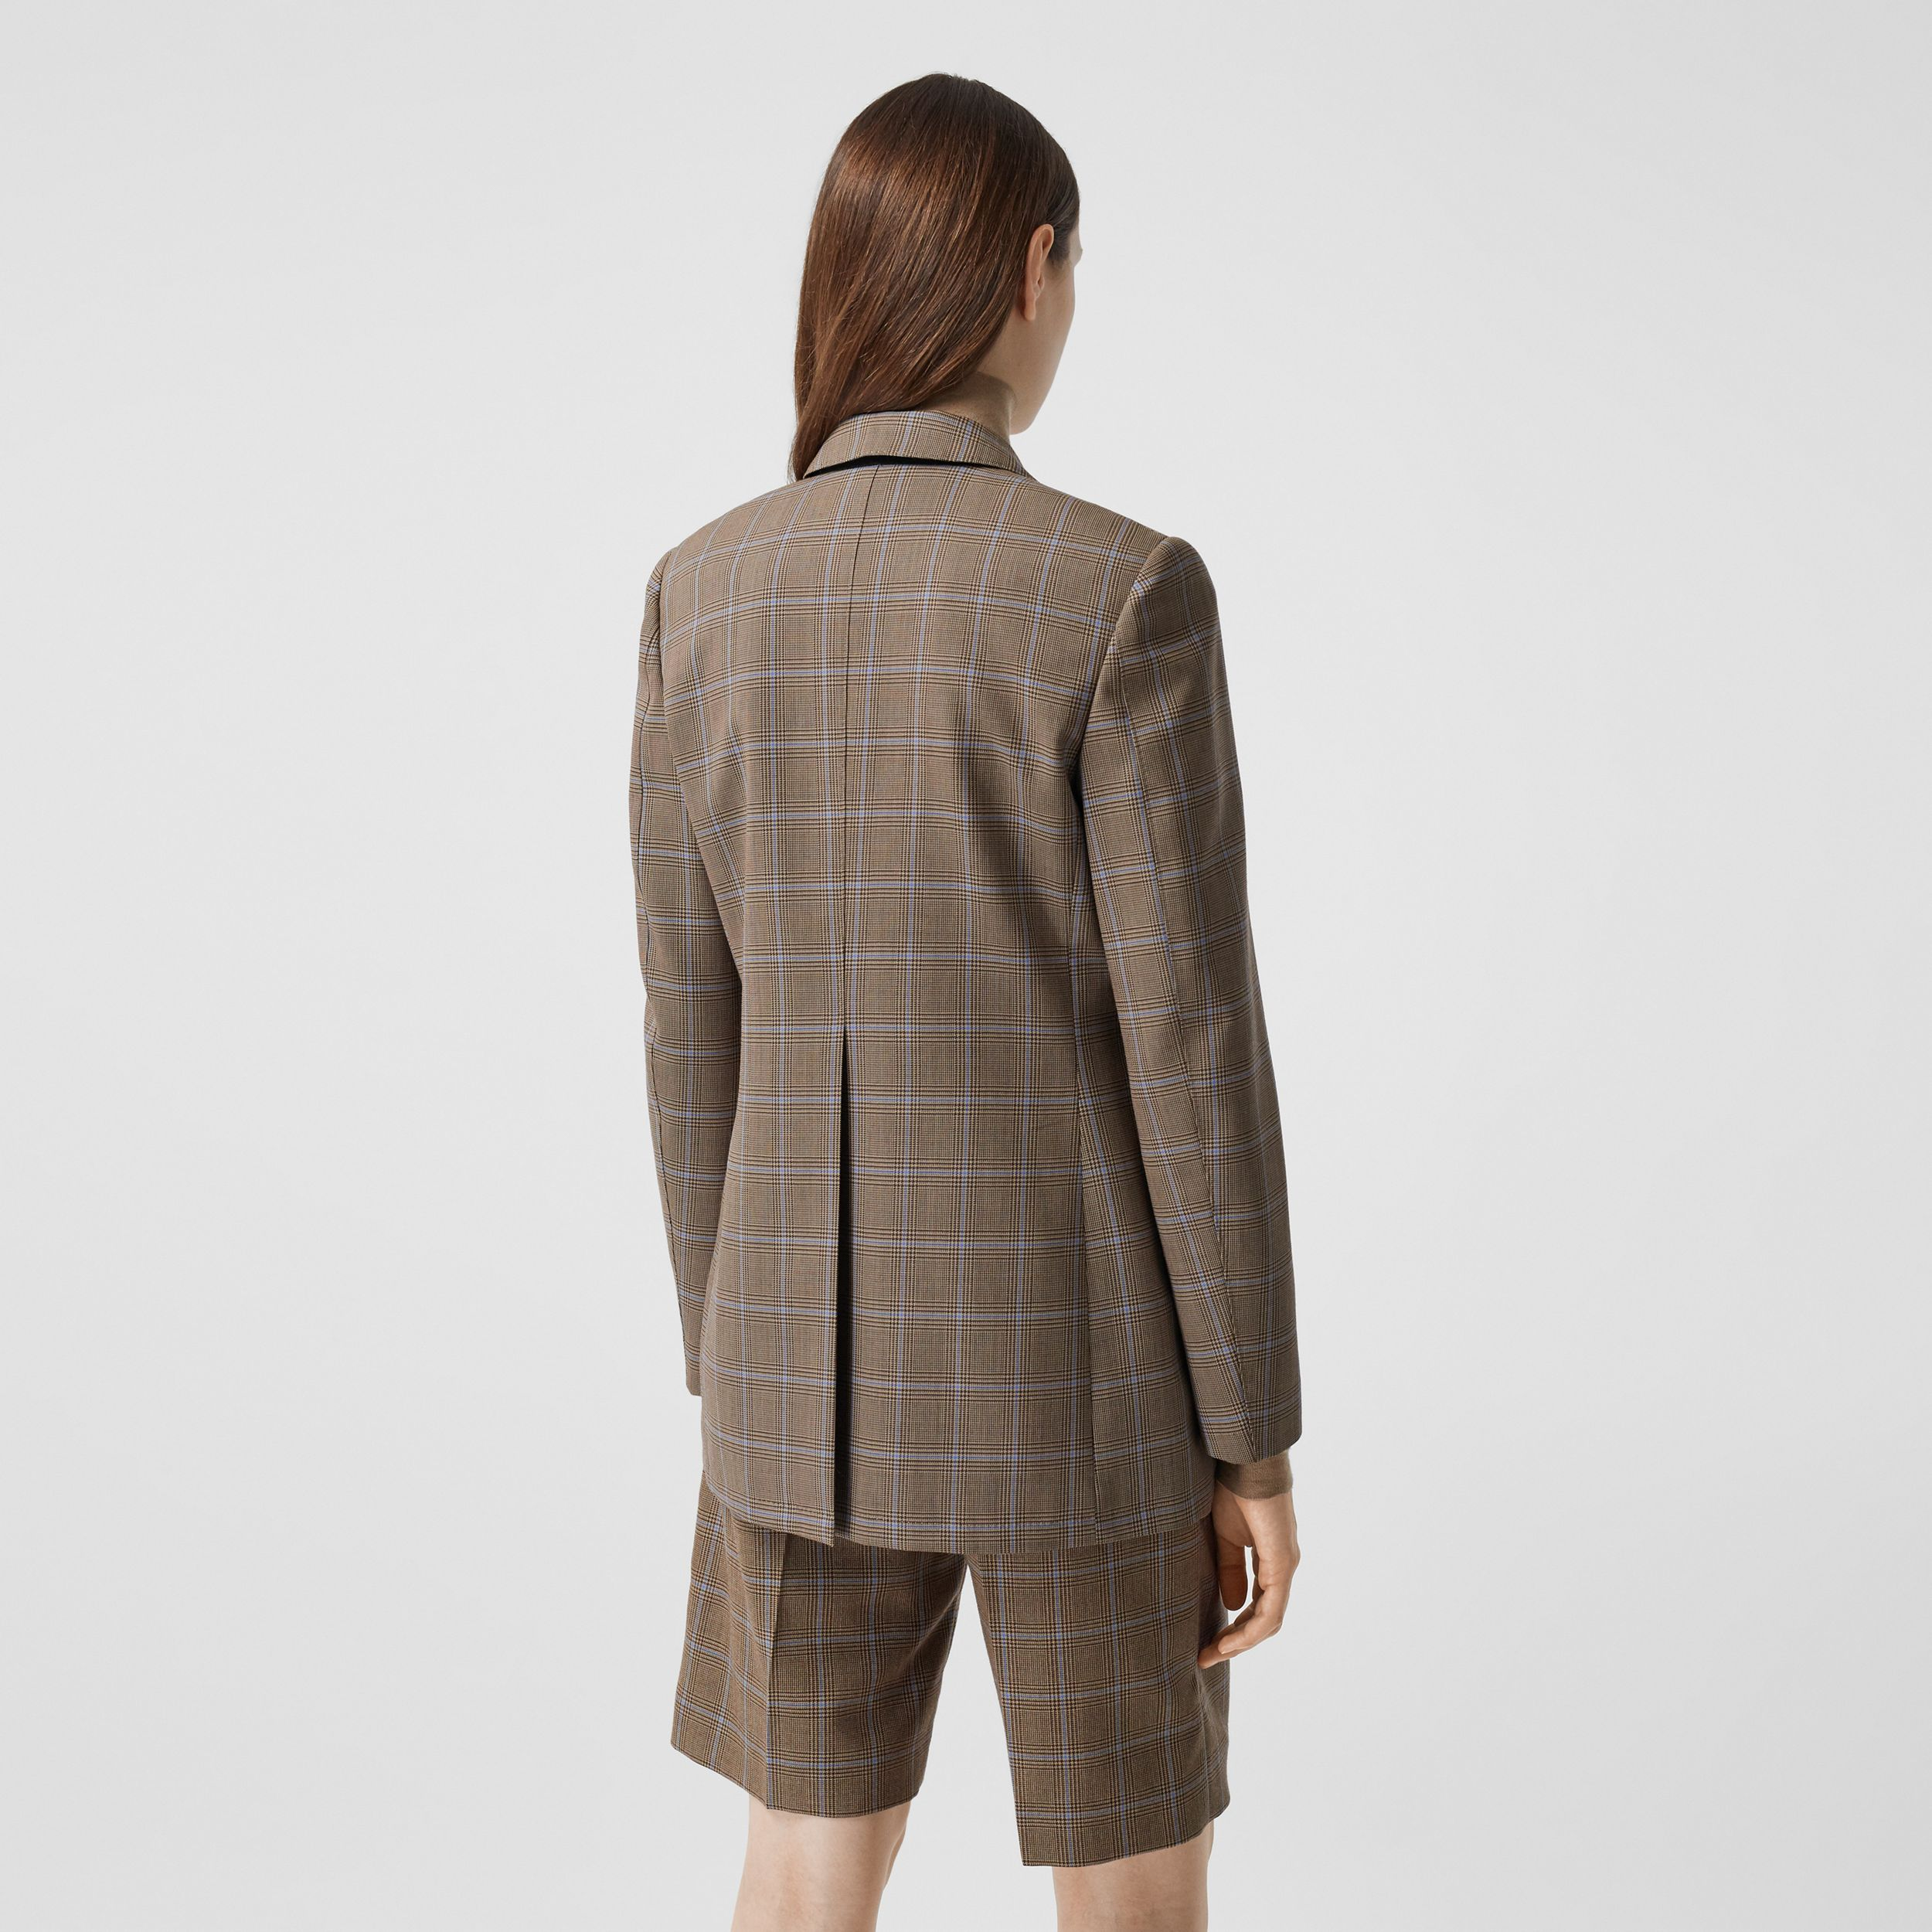 Prince of Wales Check Wool Tailored Jacket in Birch Brown - Women | Burberry - 3